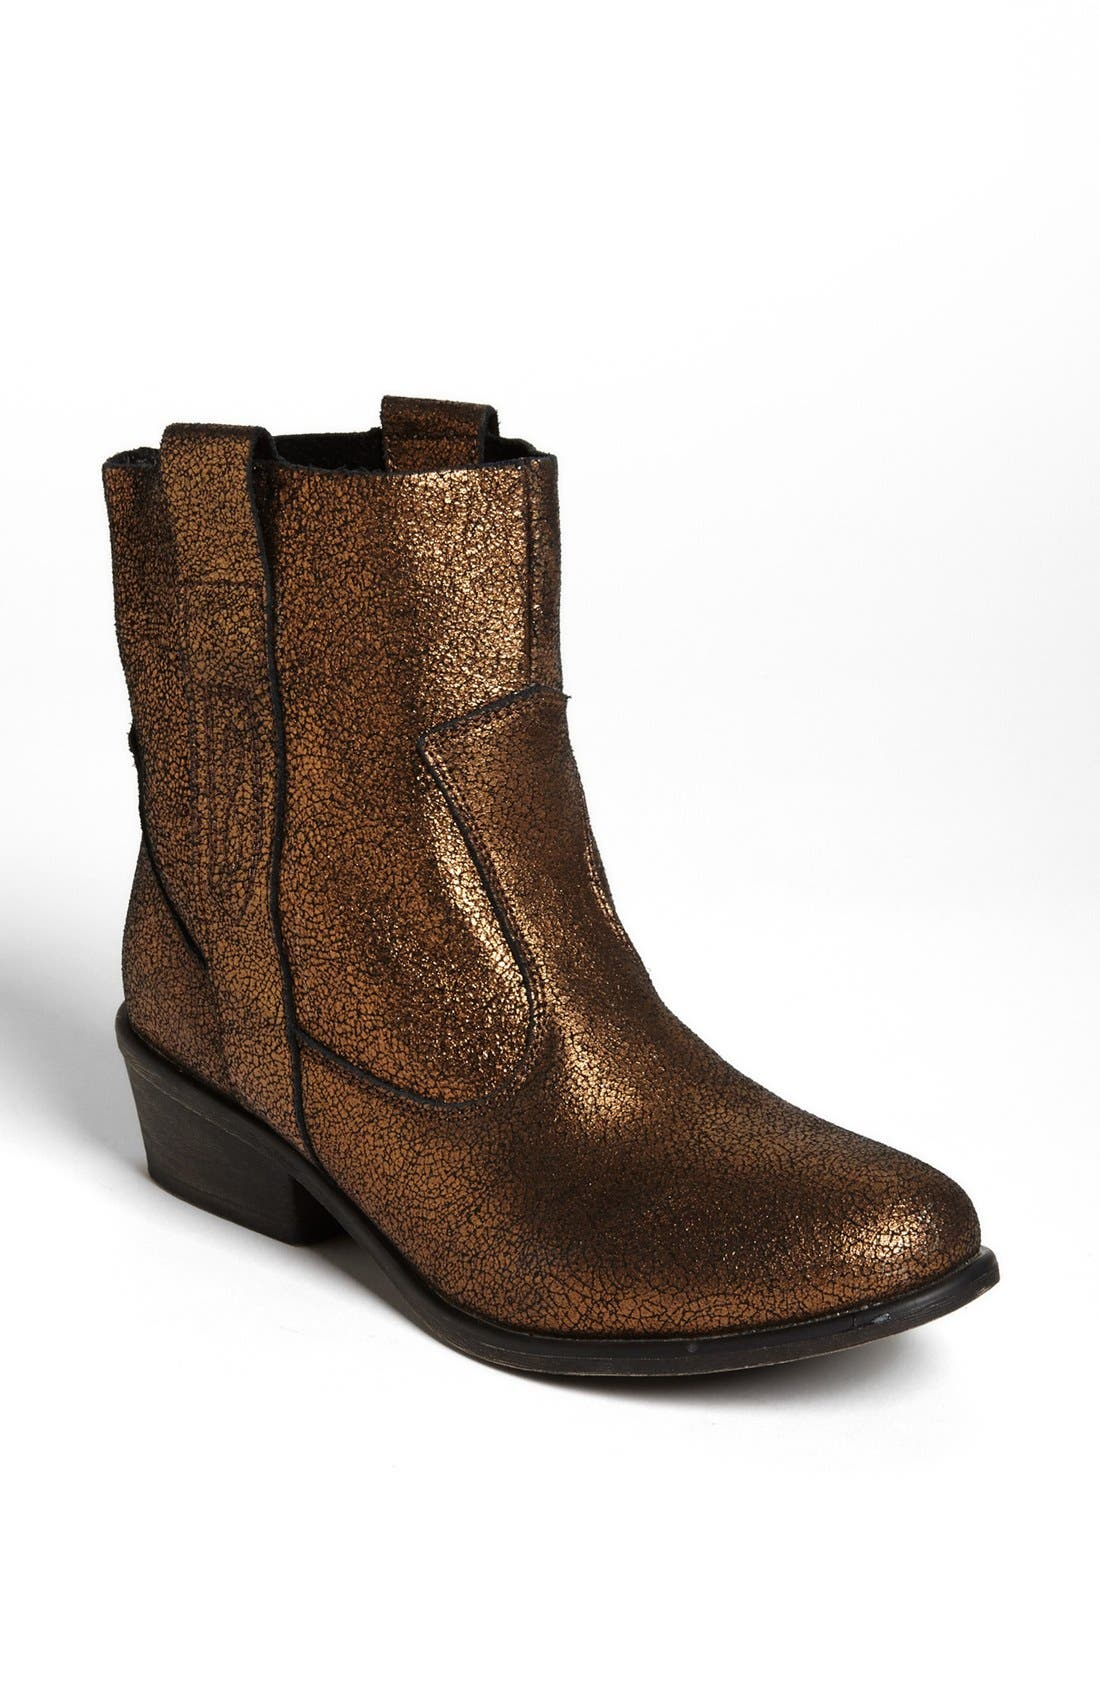 Main Image - Charles by Charles David 'Dapper' Bootie